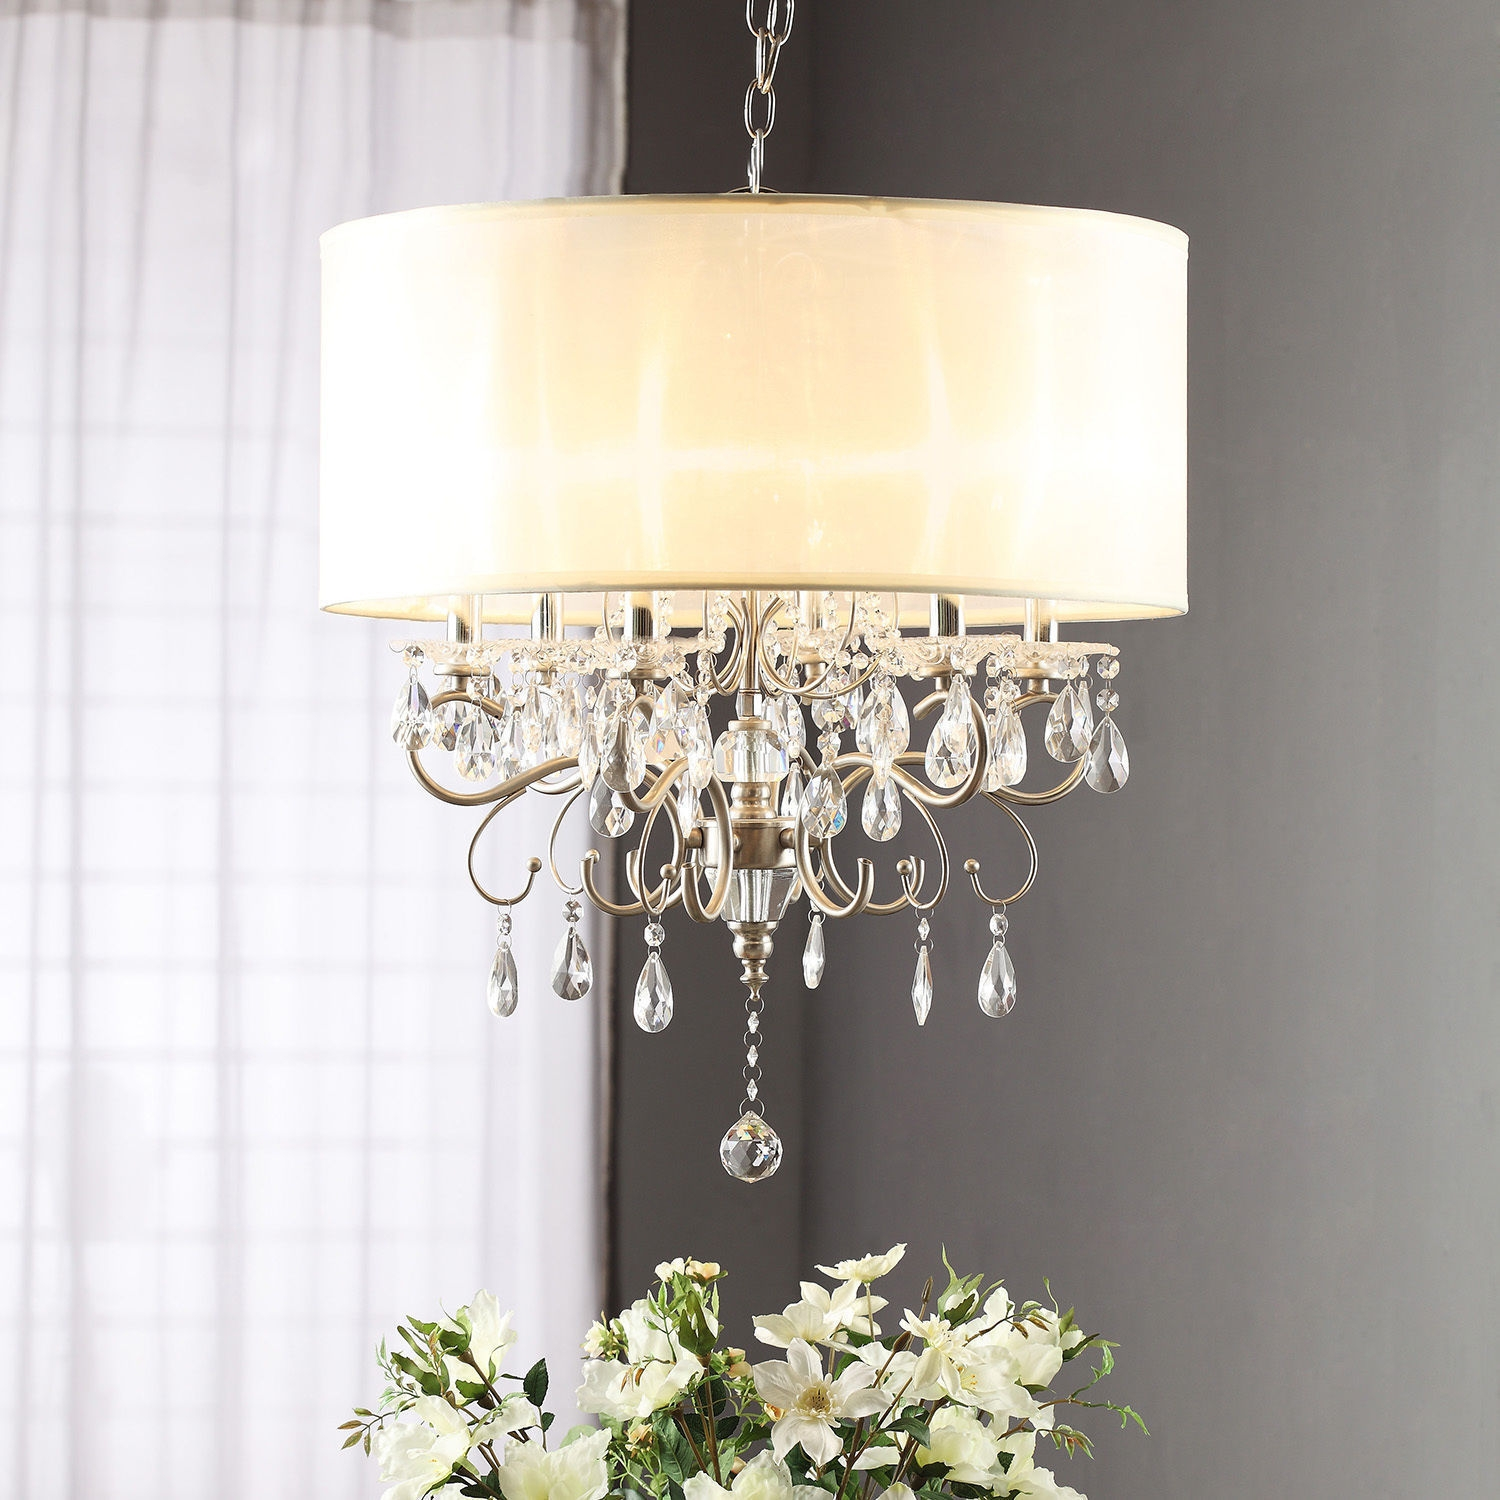 Featured Image of Cream Chandeliers